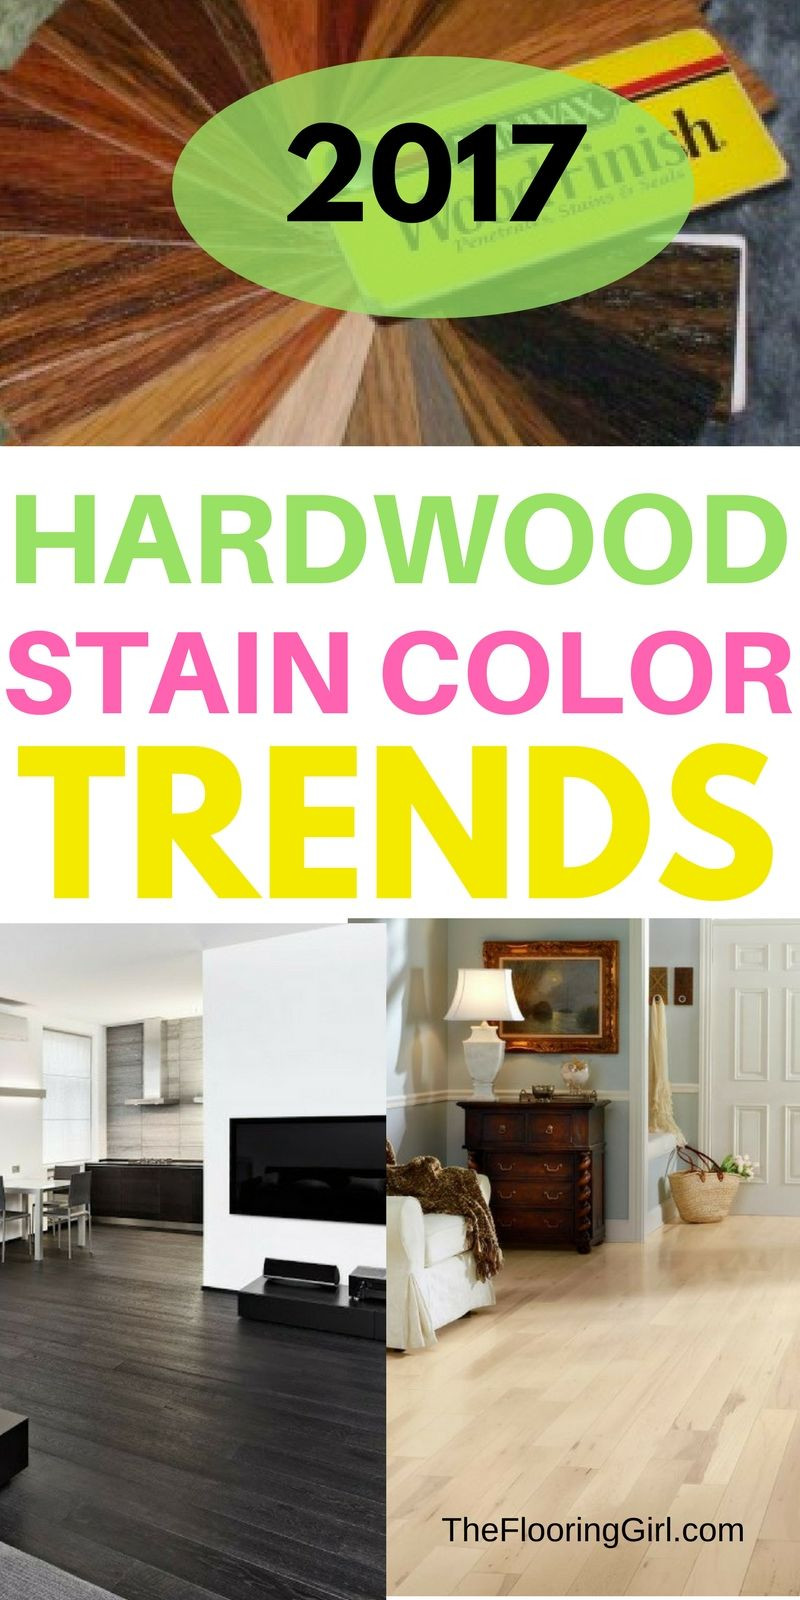 bruce hardwood floor stain colors of hardwood flooring stain color trends 2018 more from the flooring pertaining to hardwood flooring stain color trends for 2017 hardwood colors that are in style theflooringgirl com